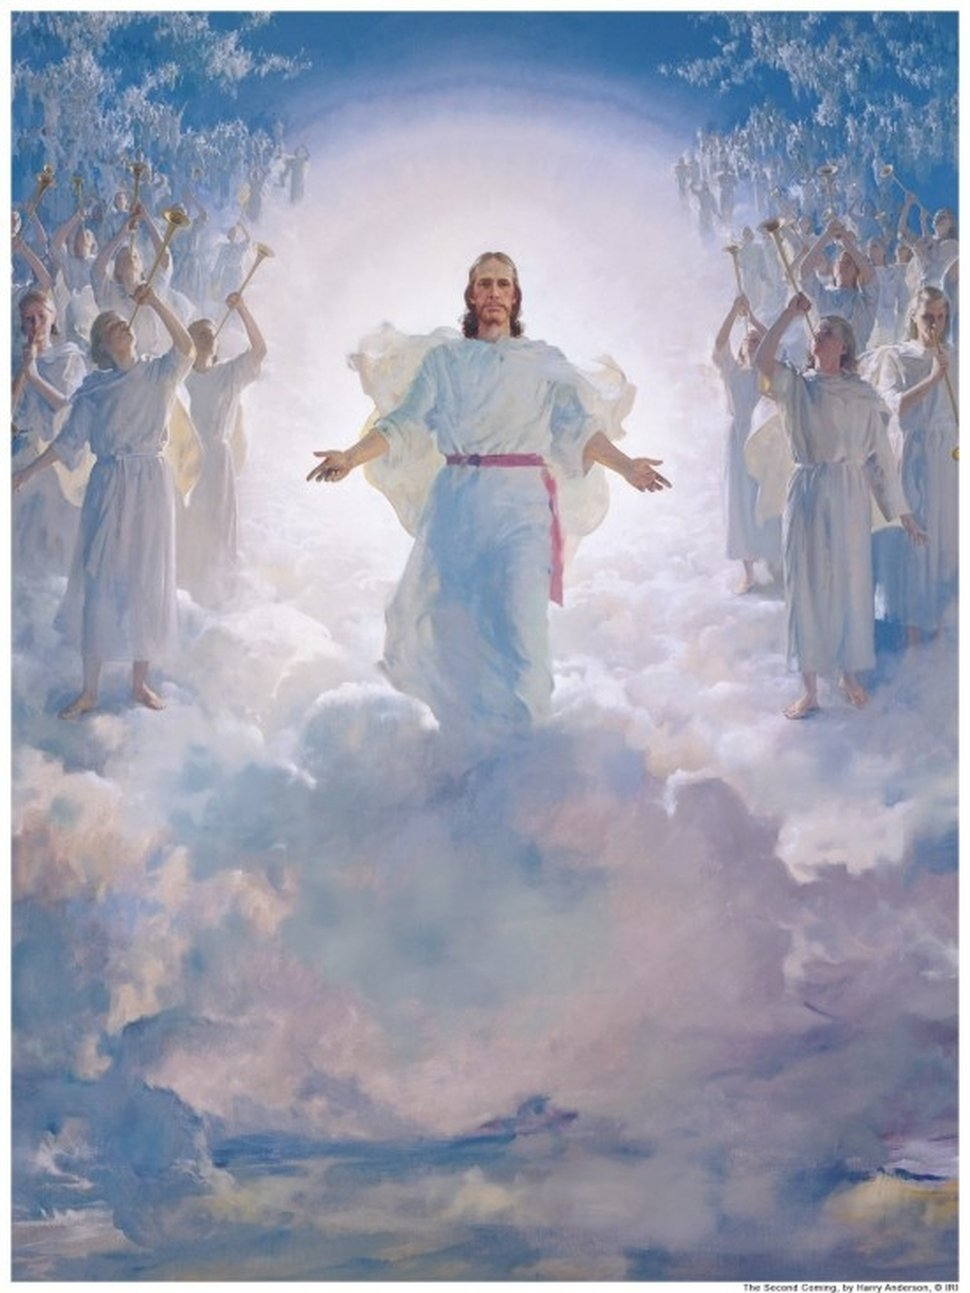 (Photo courtesy The Church of Jesus Christ of Latter-day Saints) Harry Anderson painted